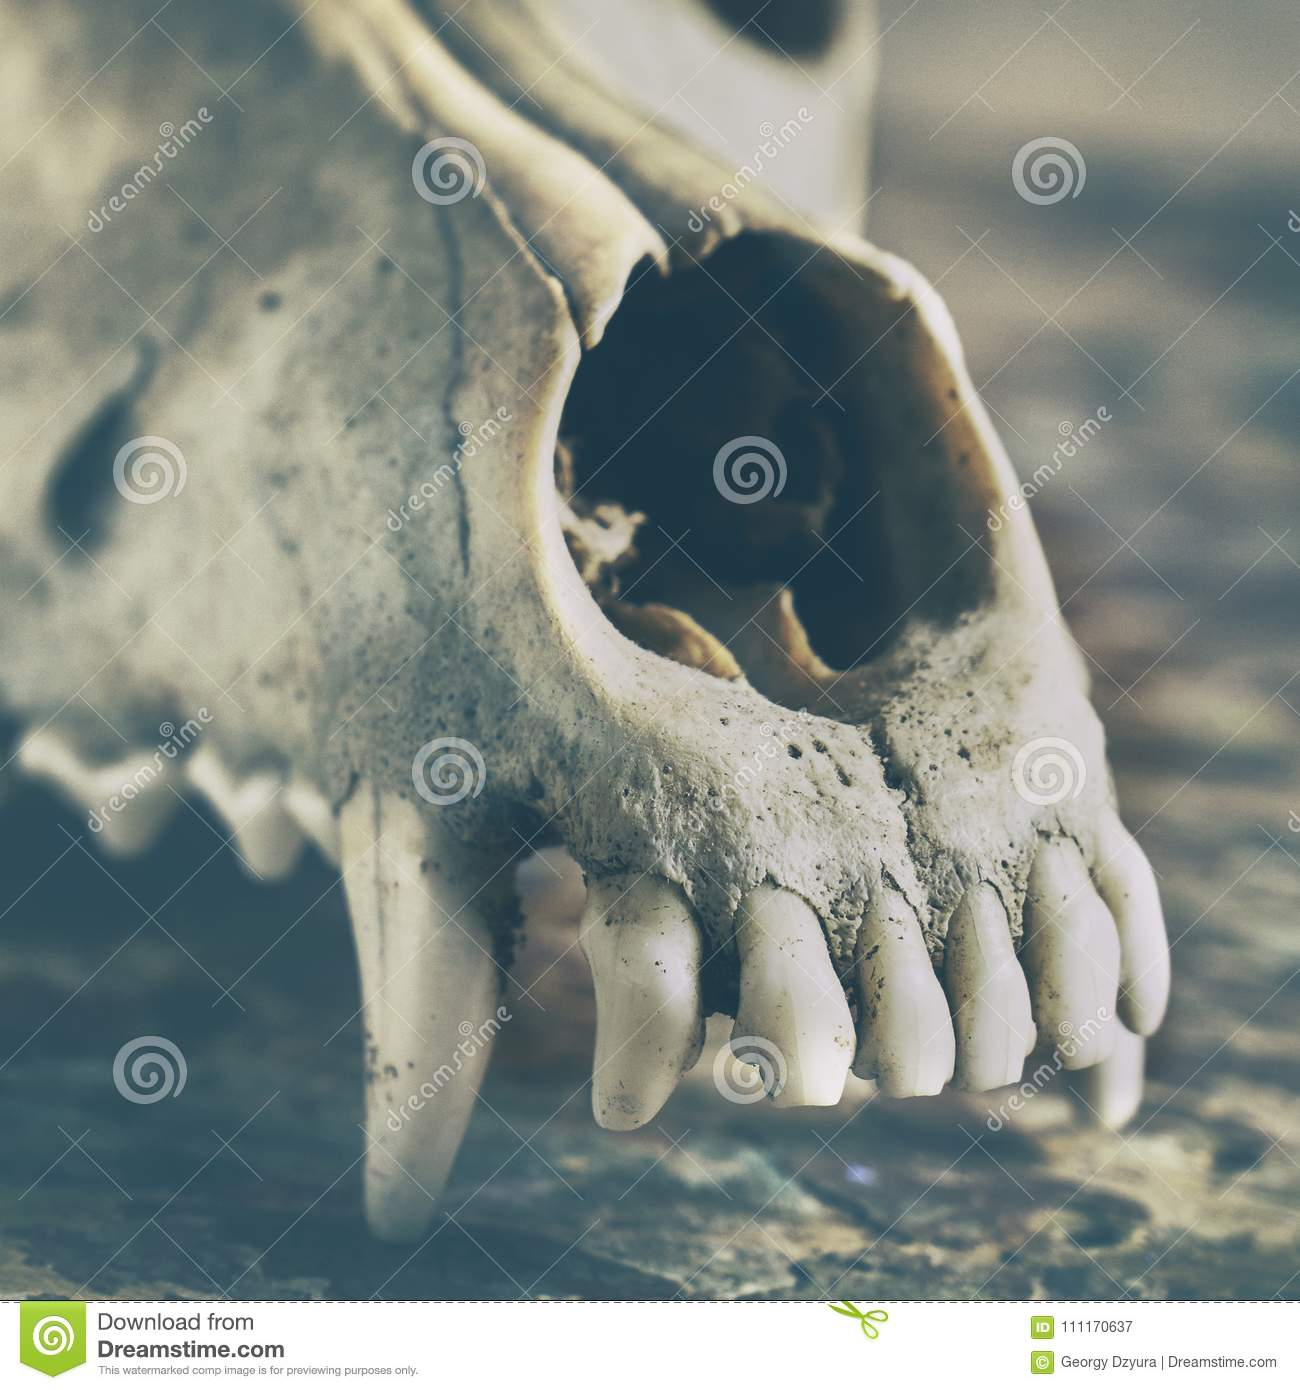 Dog scull without lower jaw